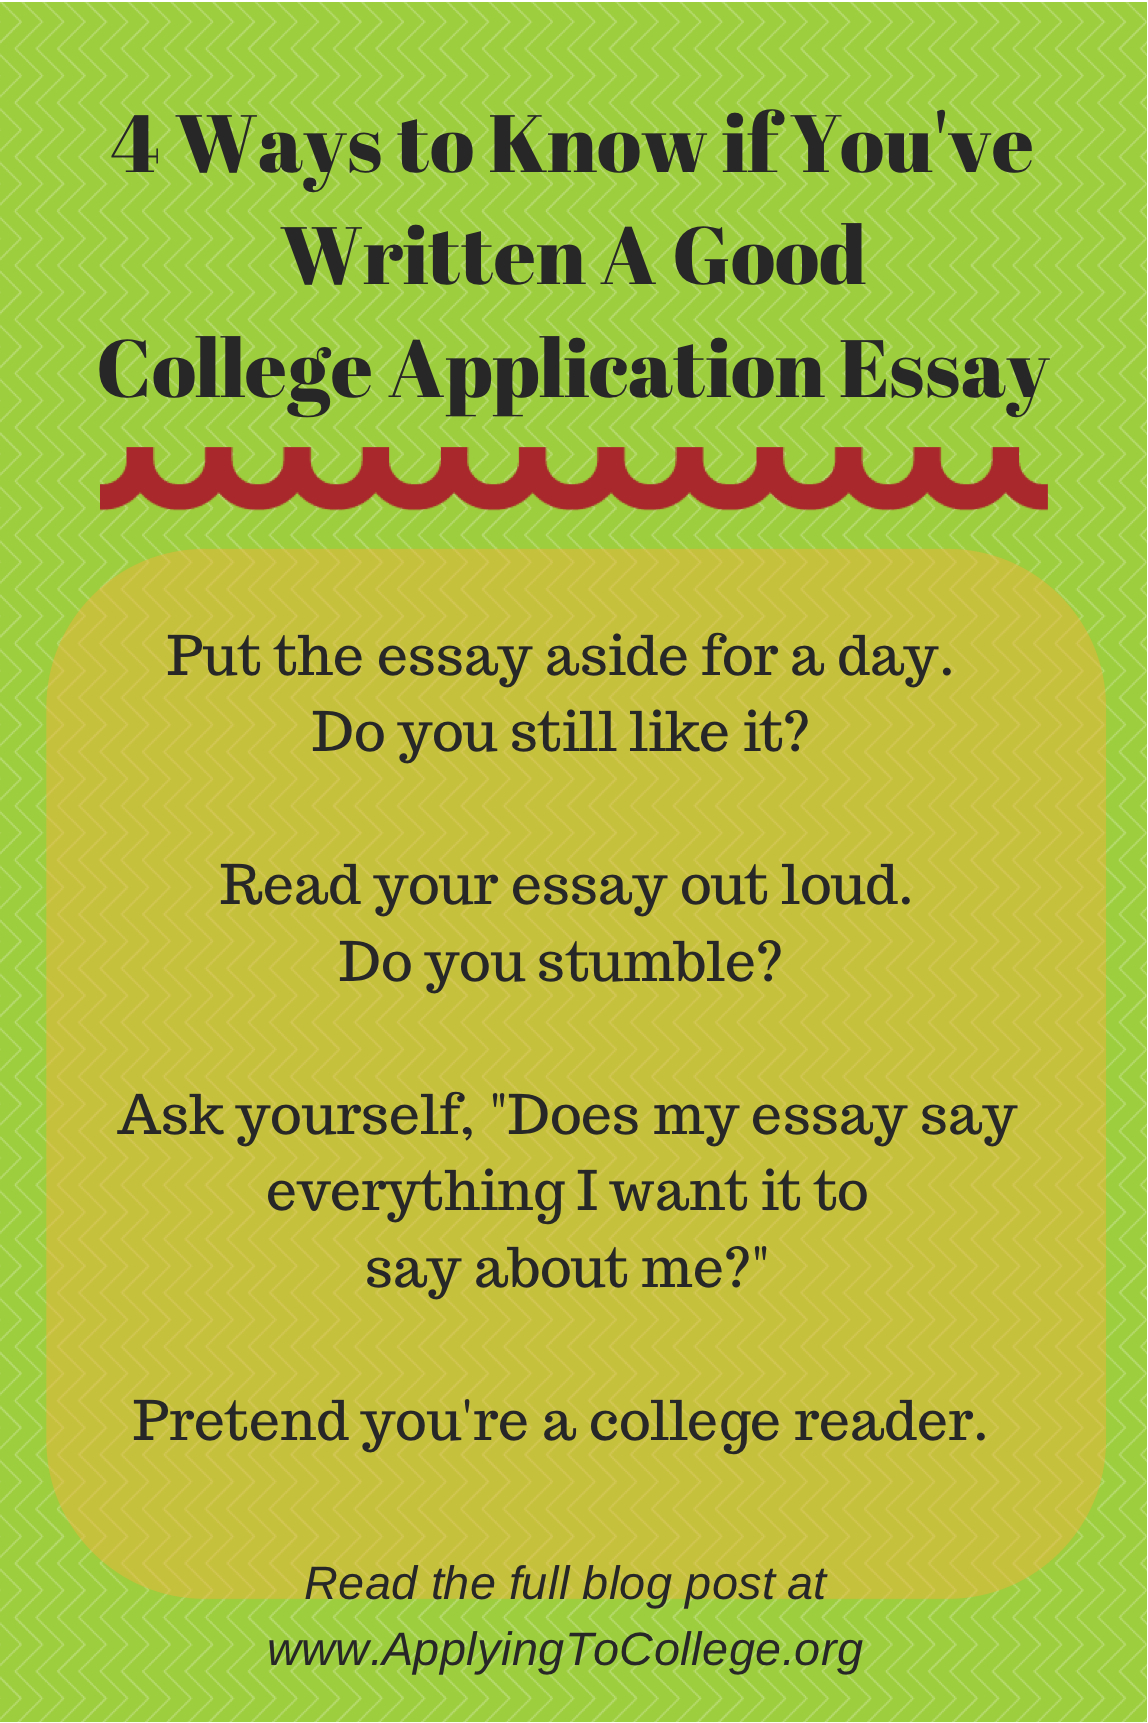 High School Essay Topics  Ways To Know If Youve Written A Good College Application Essay How To Write A Good Proposal Essay also Synthesis Example Essay Who Should Read Your College Essays  Applying To College How To Write An Essay Proposal Example